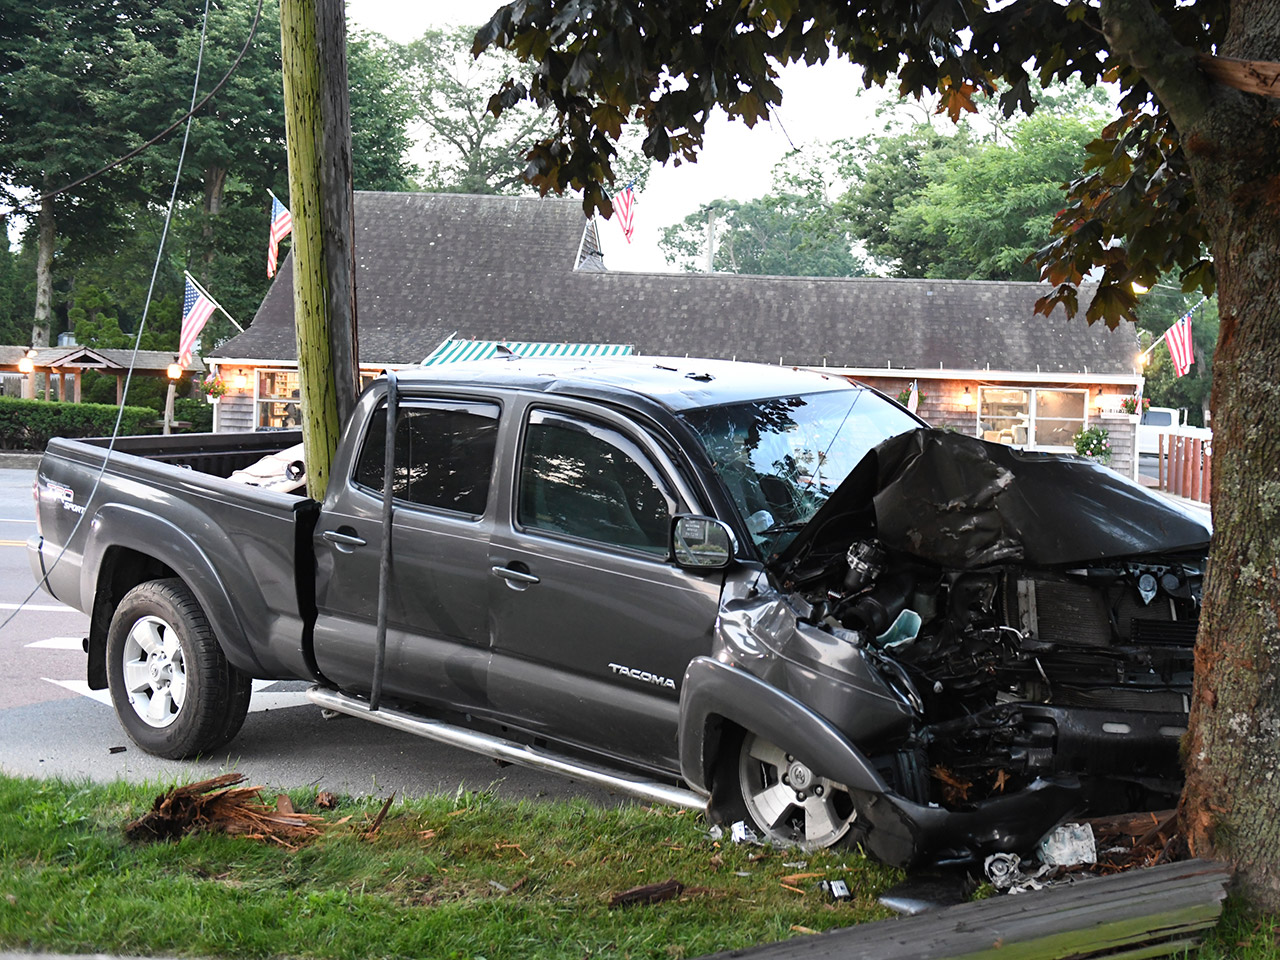 Utility Pole Goes for a Ride in Dawn Crash | The East